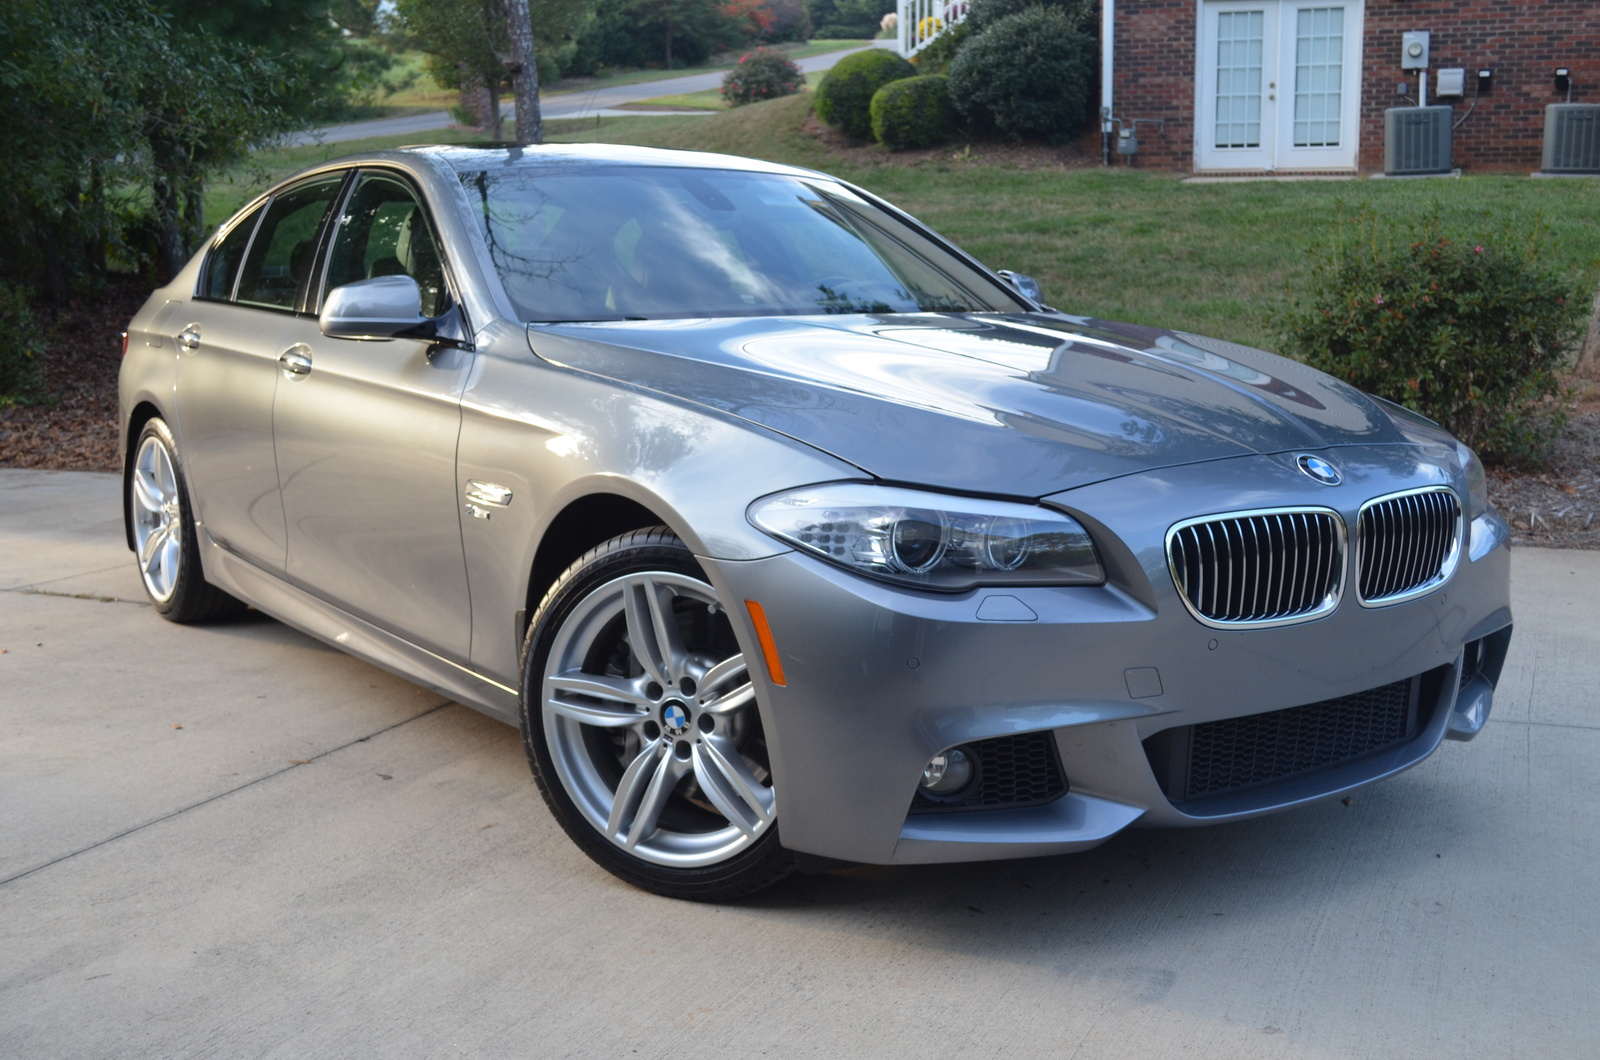 used bmw 5 series for sale johnson city tn cargurus. Black Bedroom Furniture Sets. Home Design Ideas